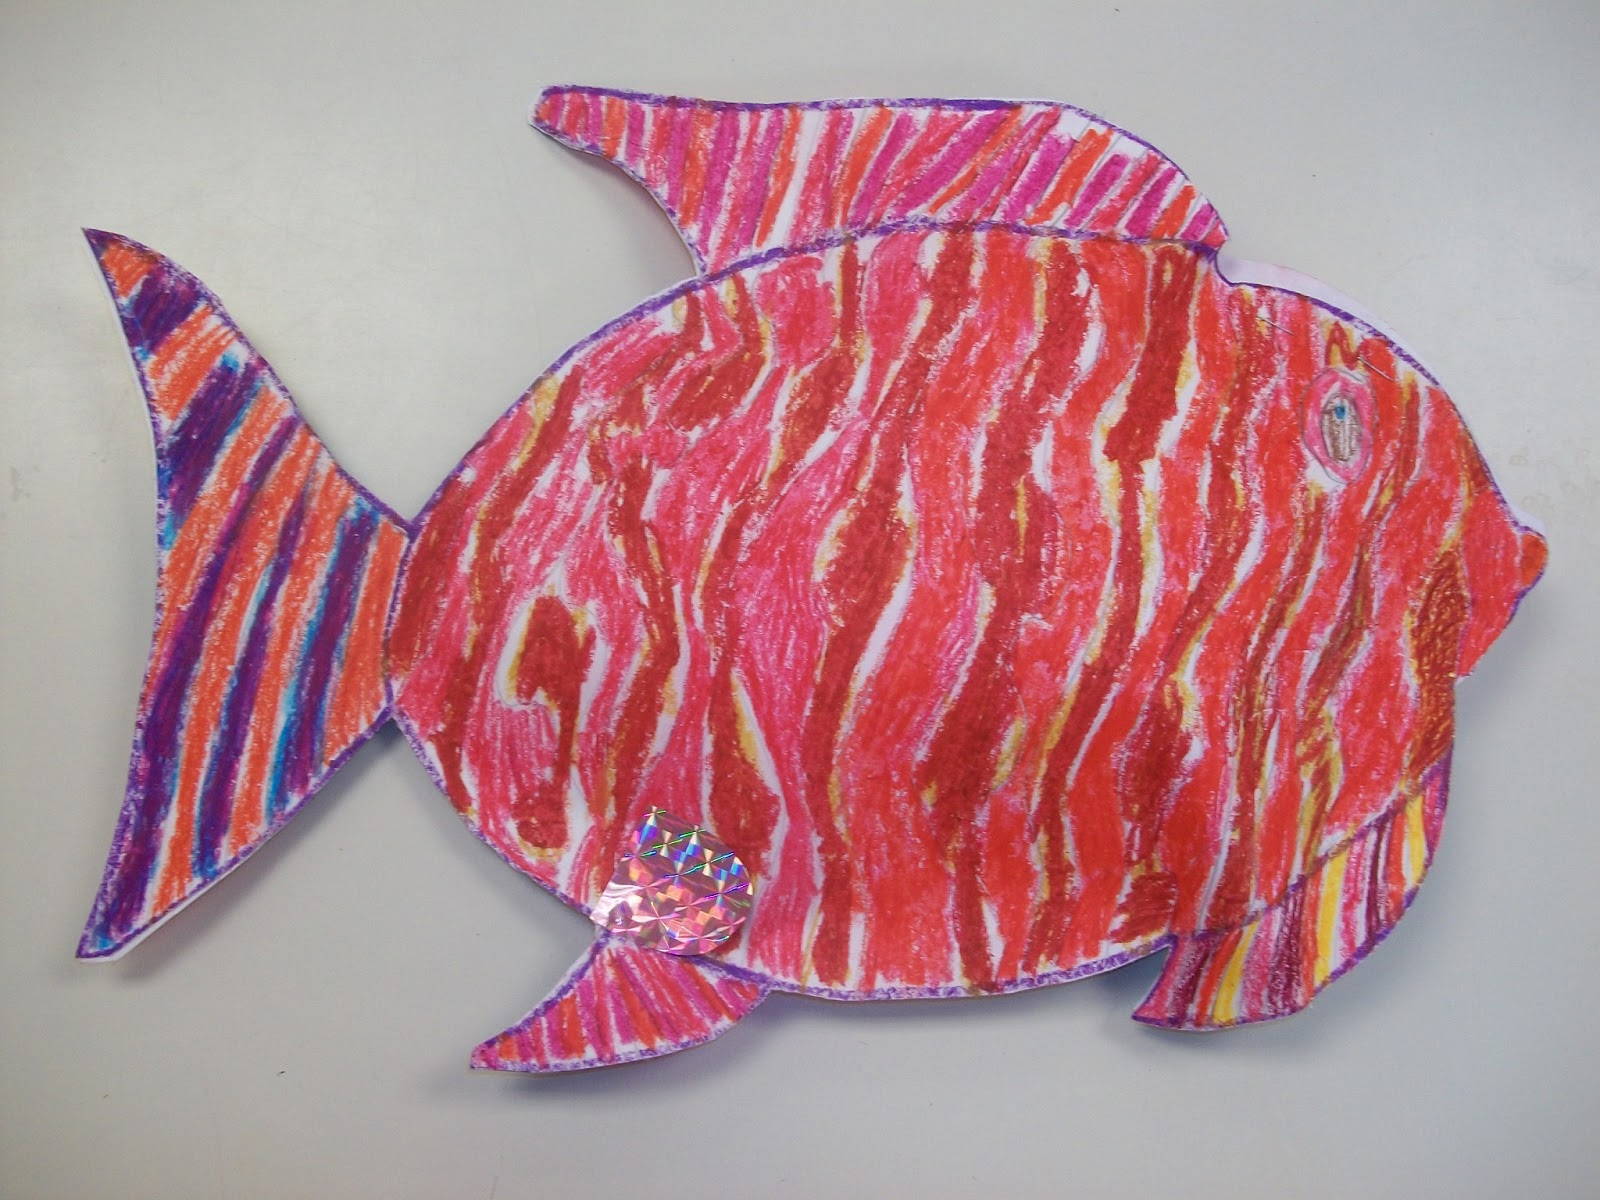 The Magnificent Paintbrush: 3-D Color Theory Fish--Rainbow Fish Inspired